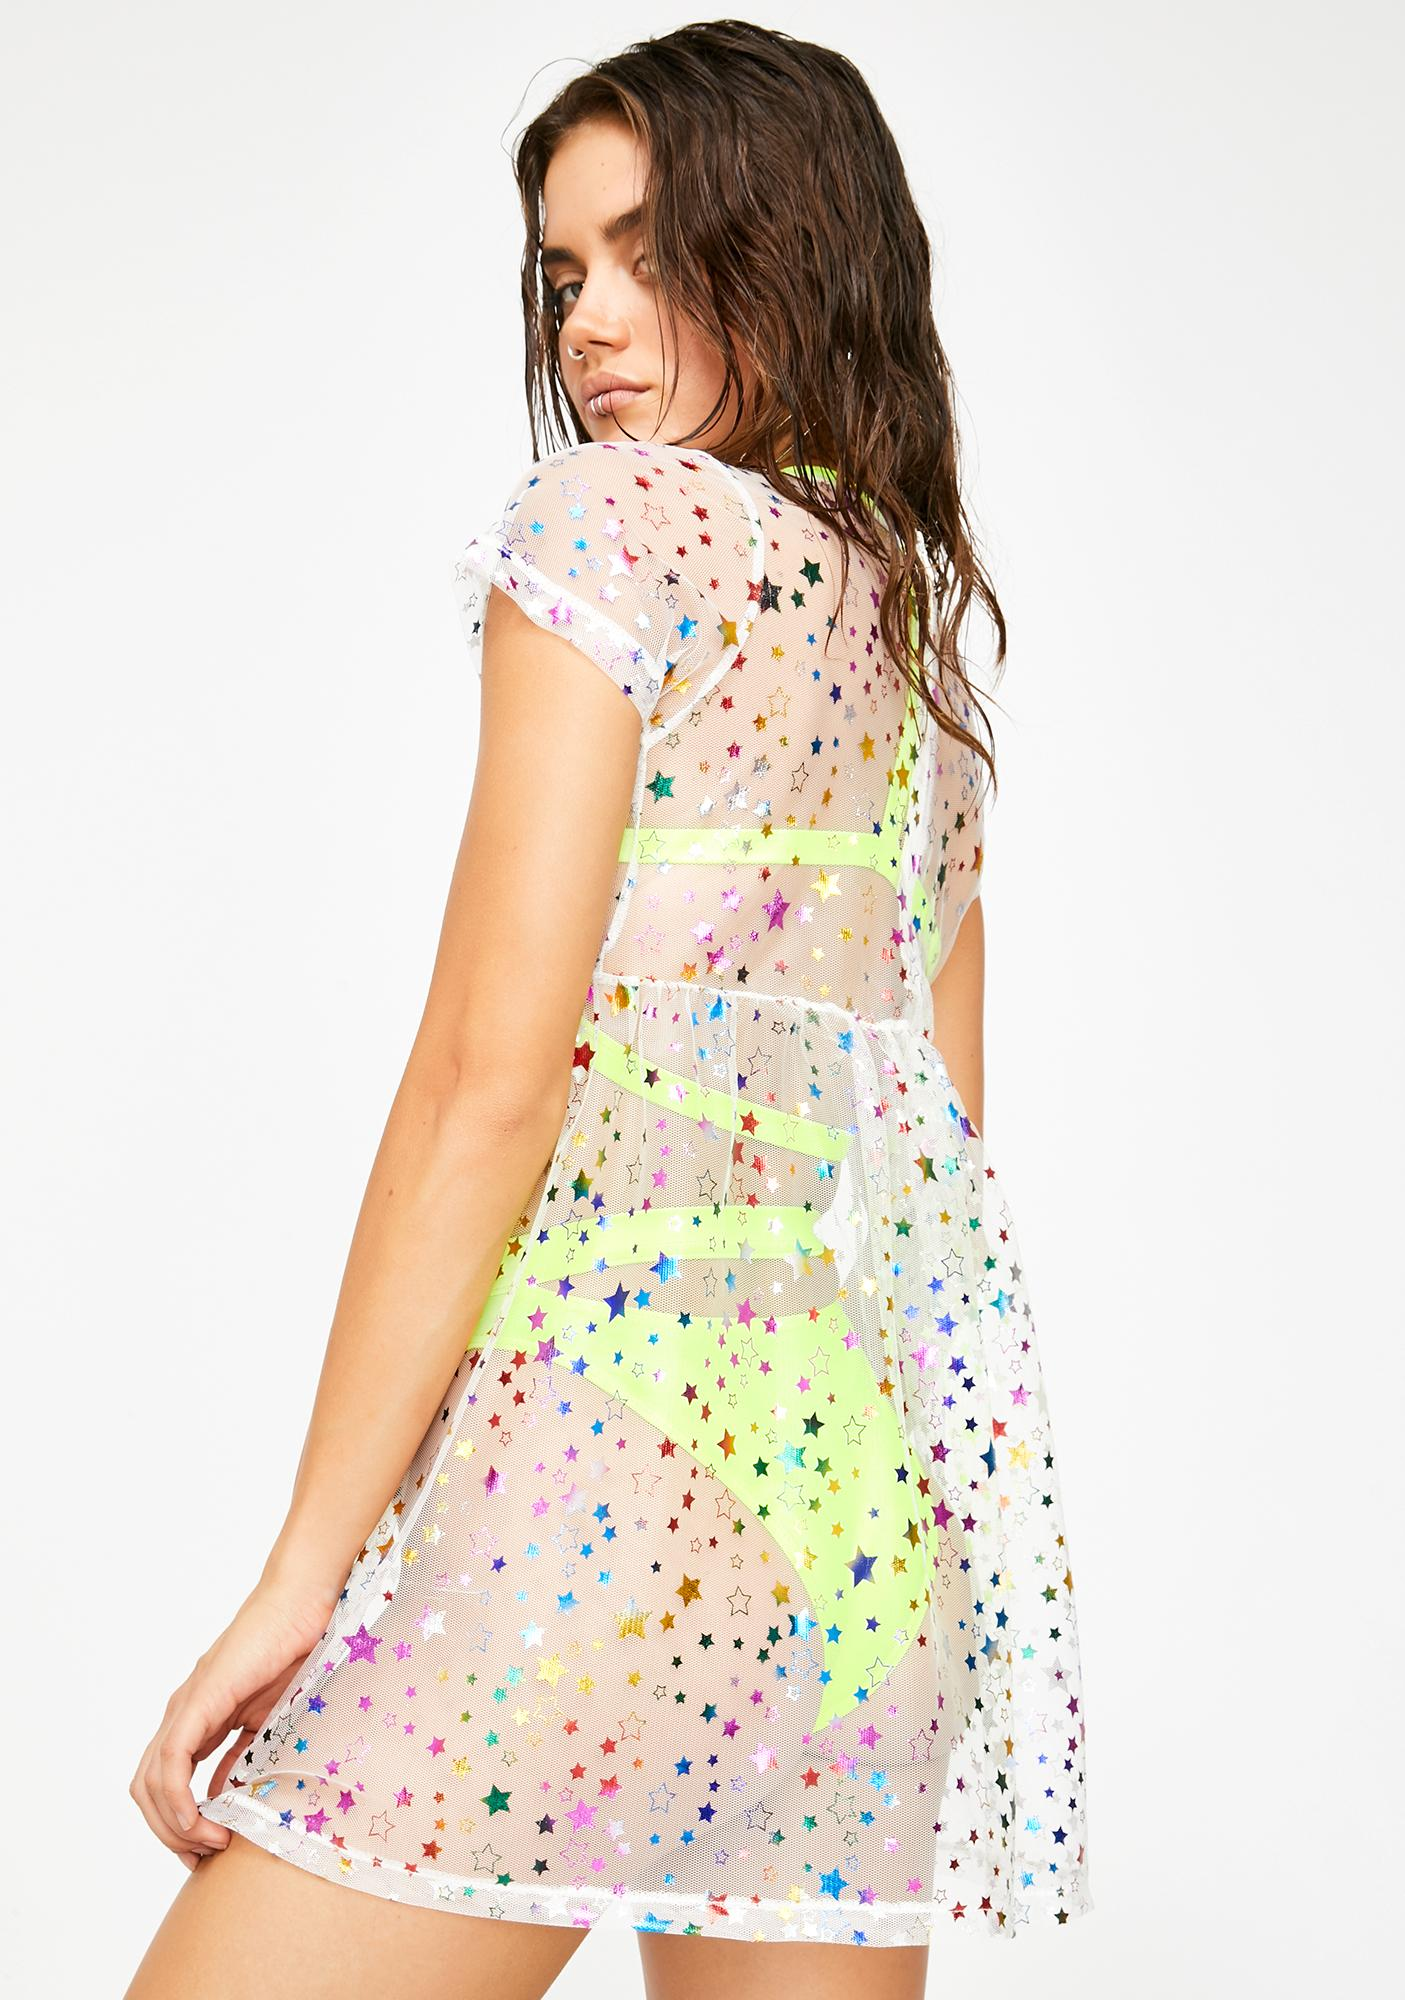 Pixie Passion Sheer Dress